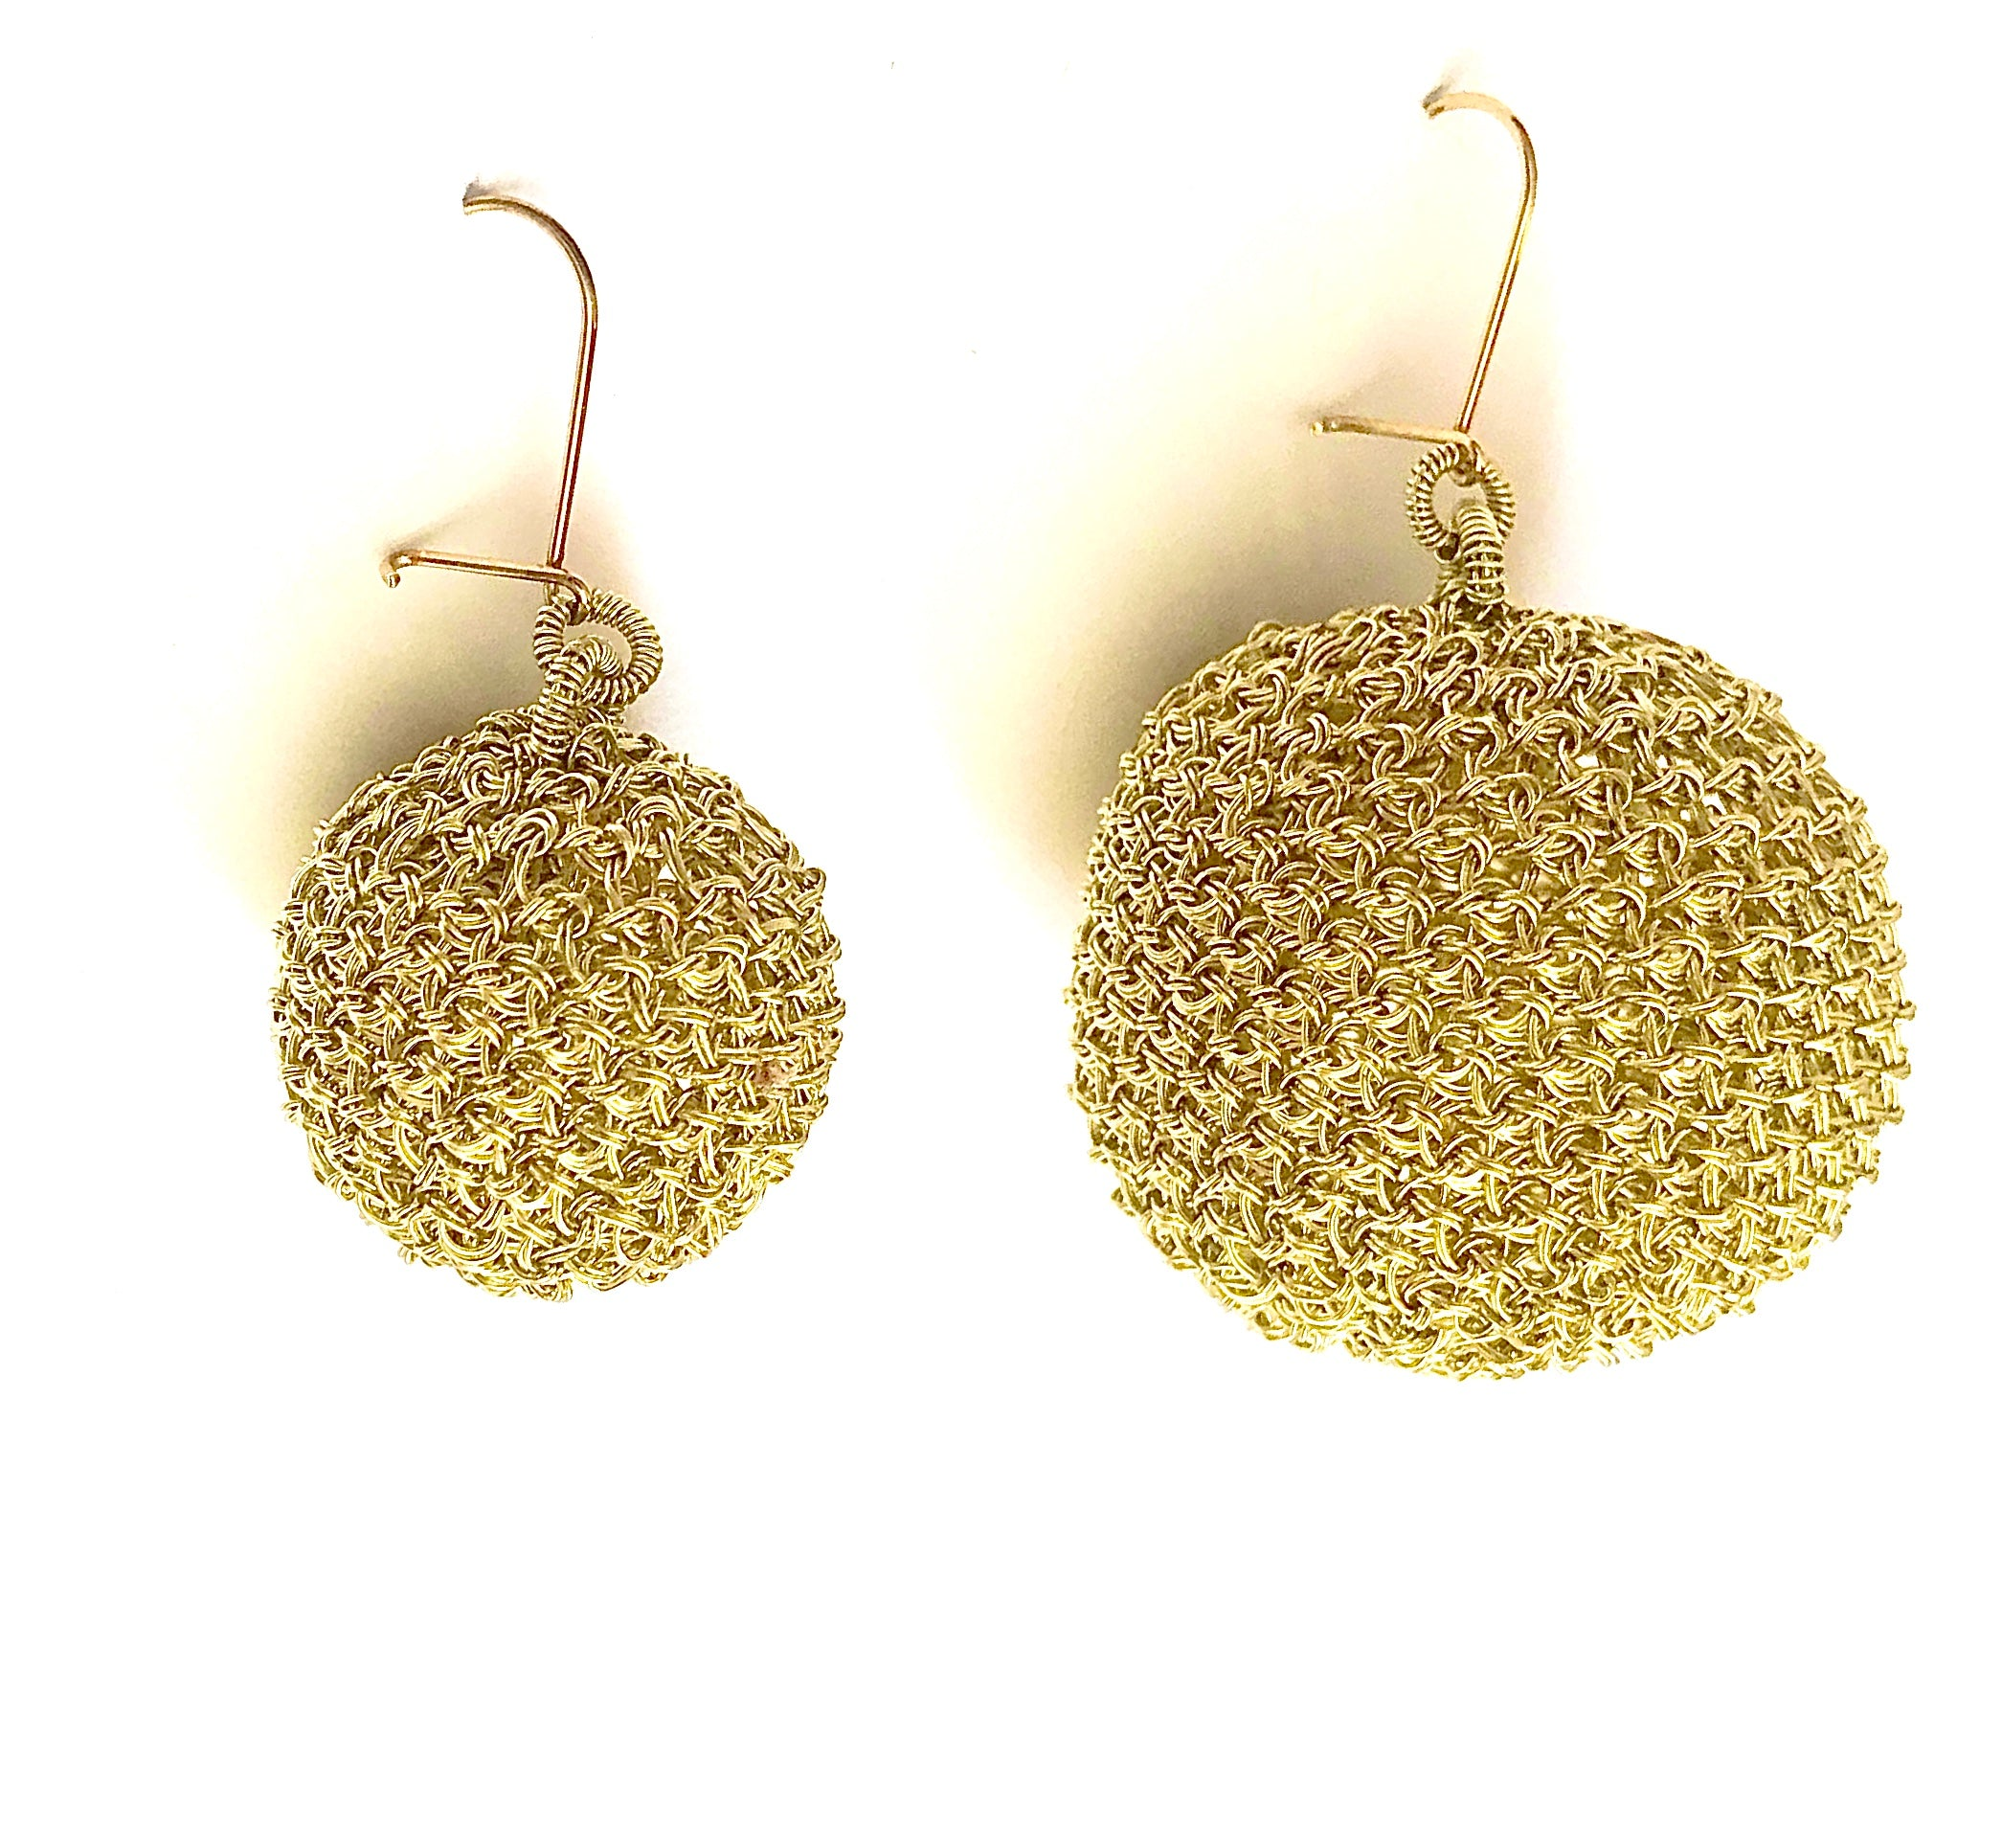 Perle D'Oro Earrings, Venice Collection